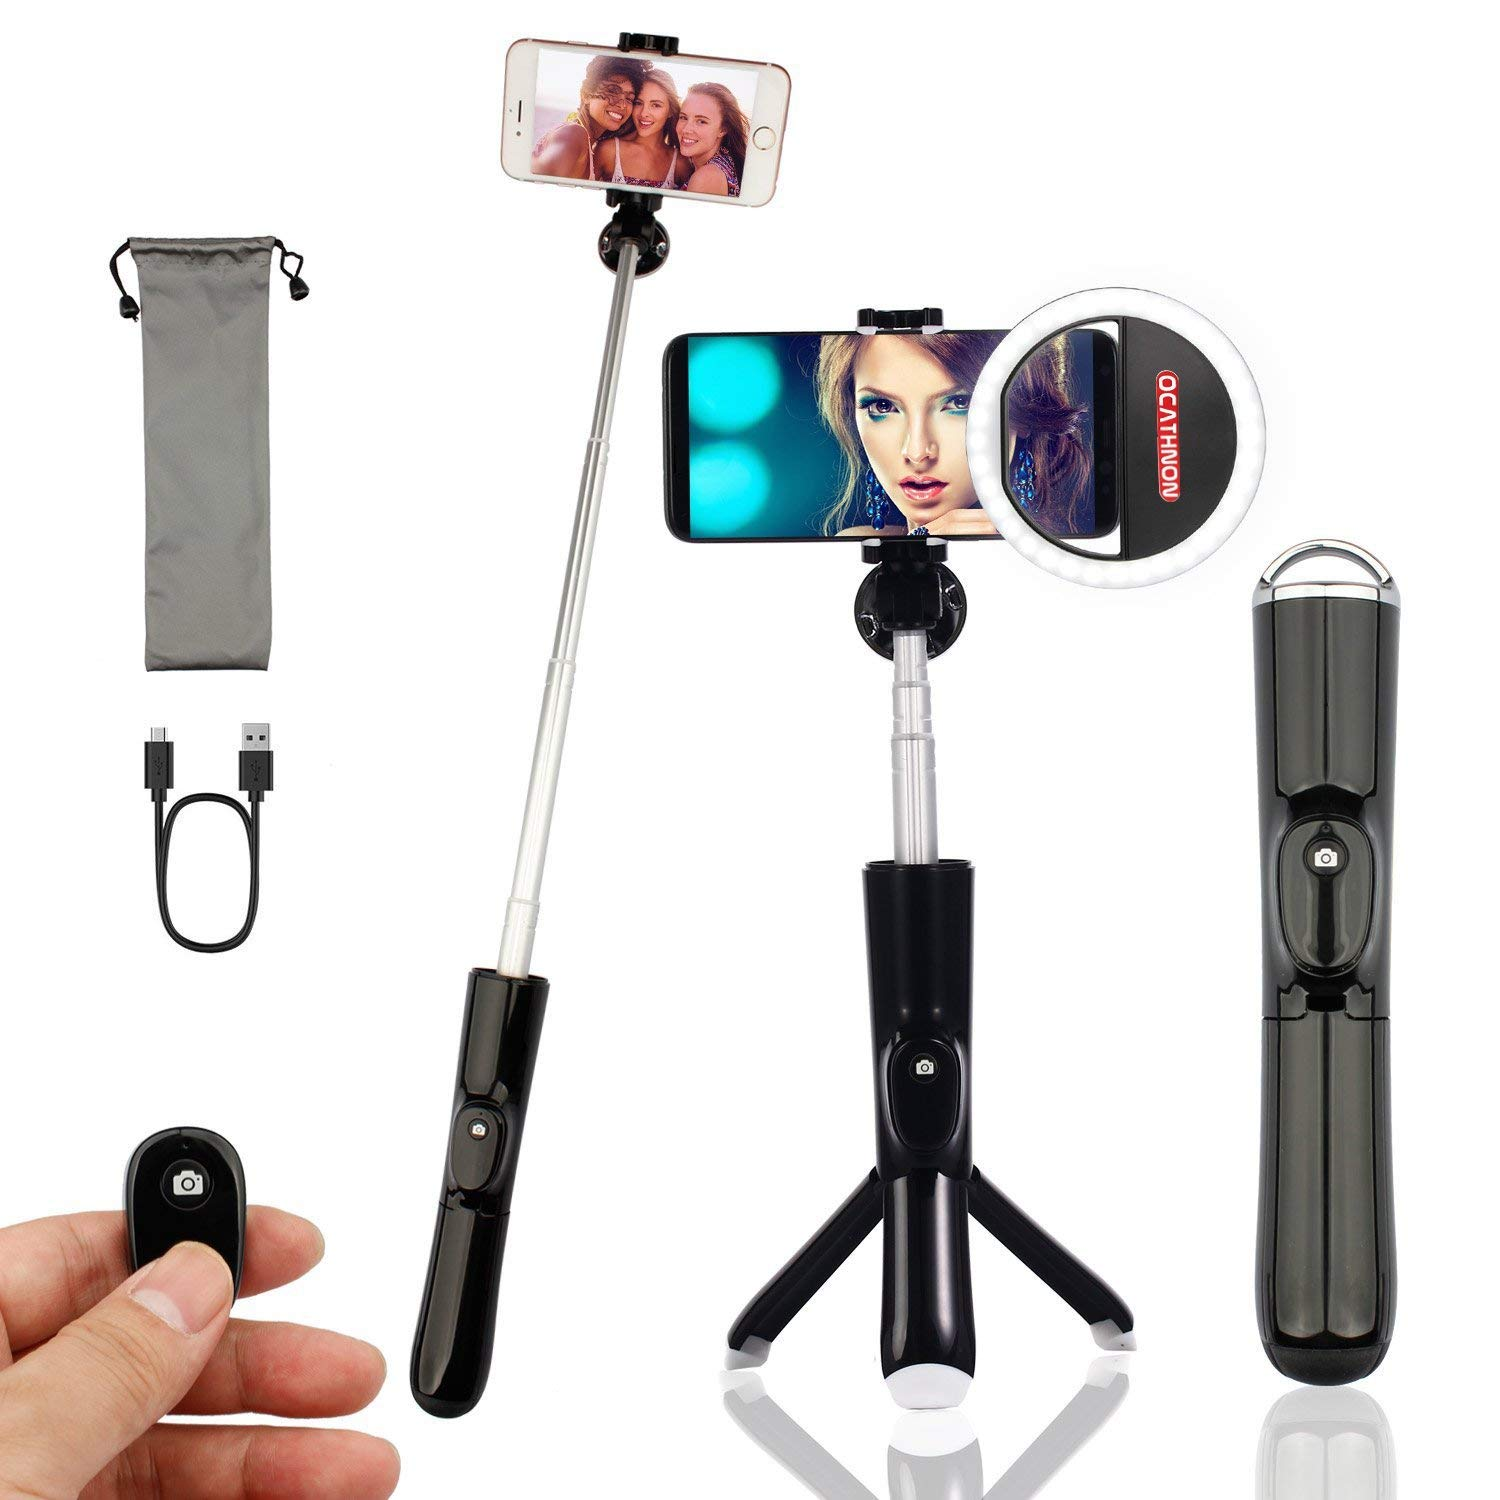 Bluetooth Selfie Stick Tripod Remote Plus Ocathnon Selfie Ring Light Rechargeable, Extendable Monopod Tripod Stand 360 Degree Rotation to Support Selfie for iPhone7 8 Plus X/Galaxy S8/9 More Cellphone